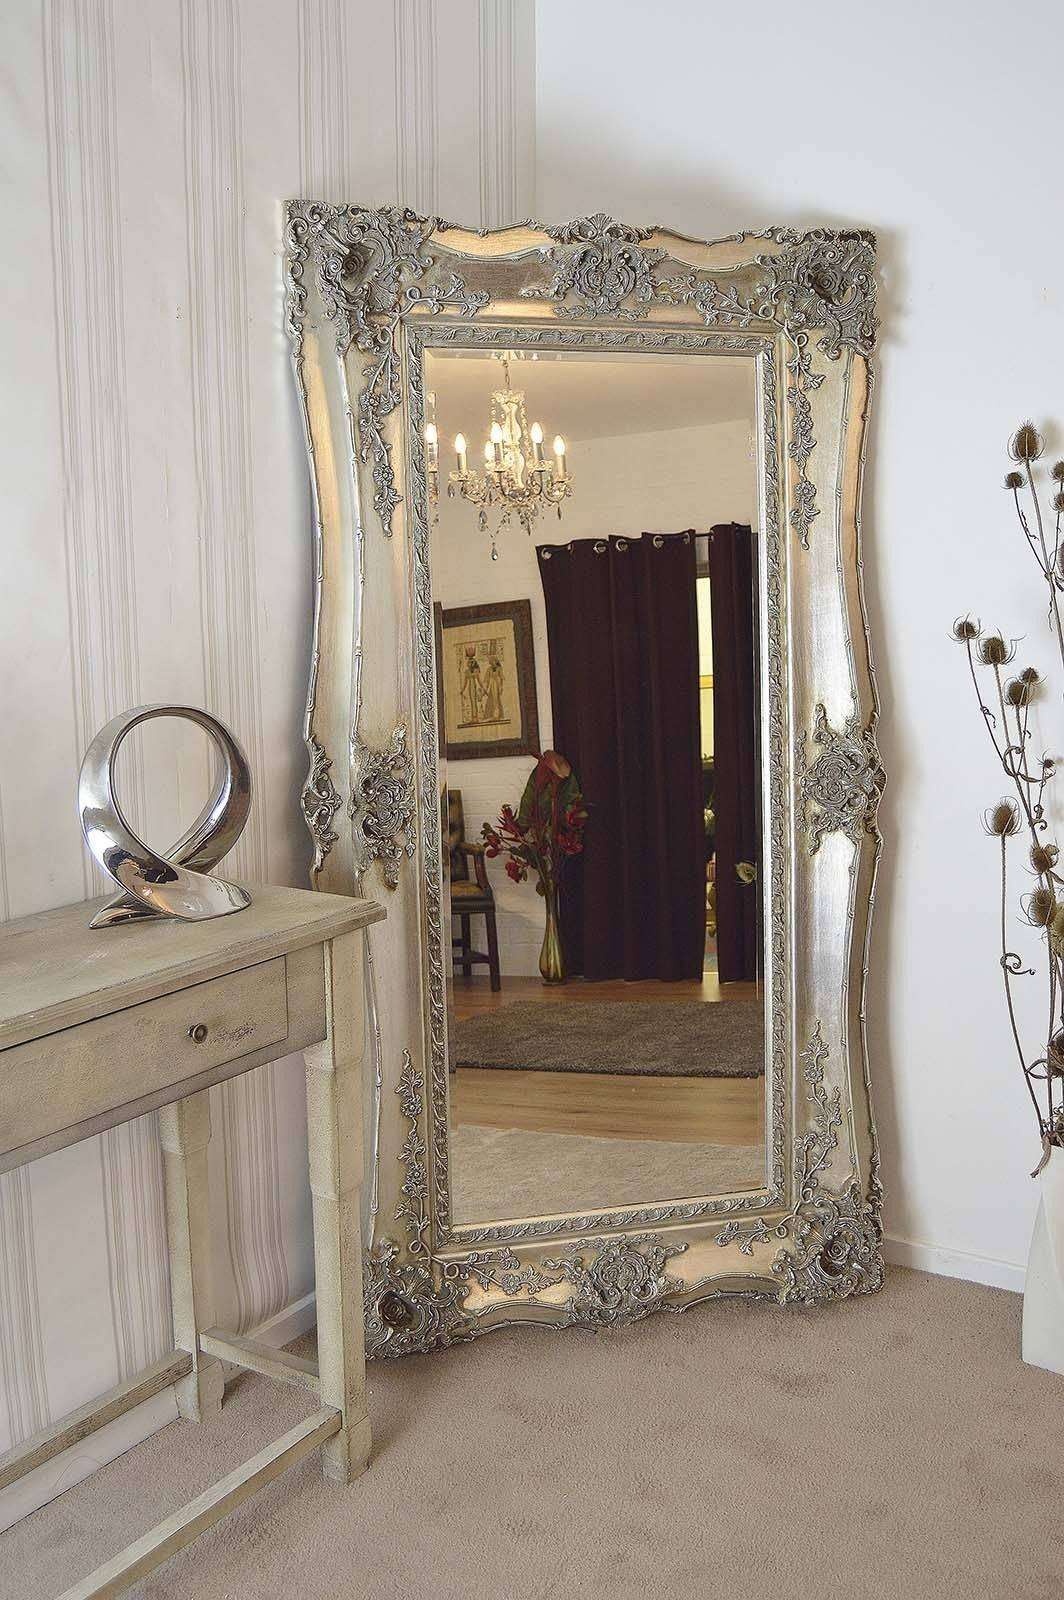 Homeware: Oval Full Length Standing Mirror | Large Floor Mirrors in Ornate Free Standing Mirrors (Image 8 of 15)